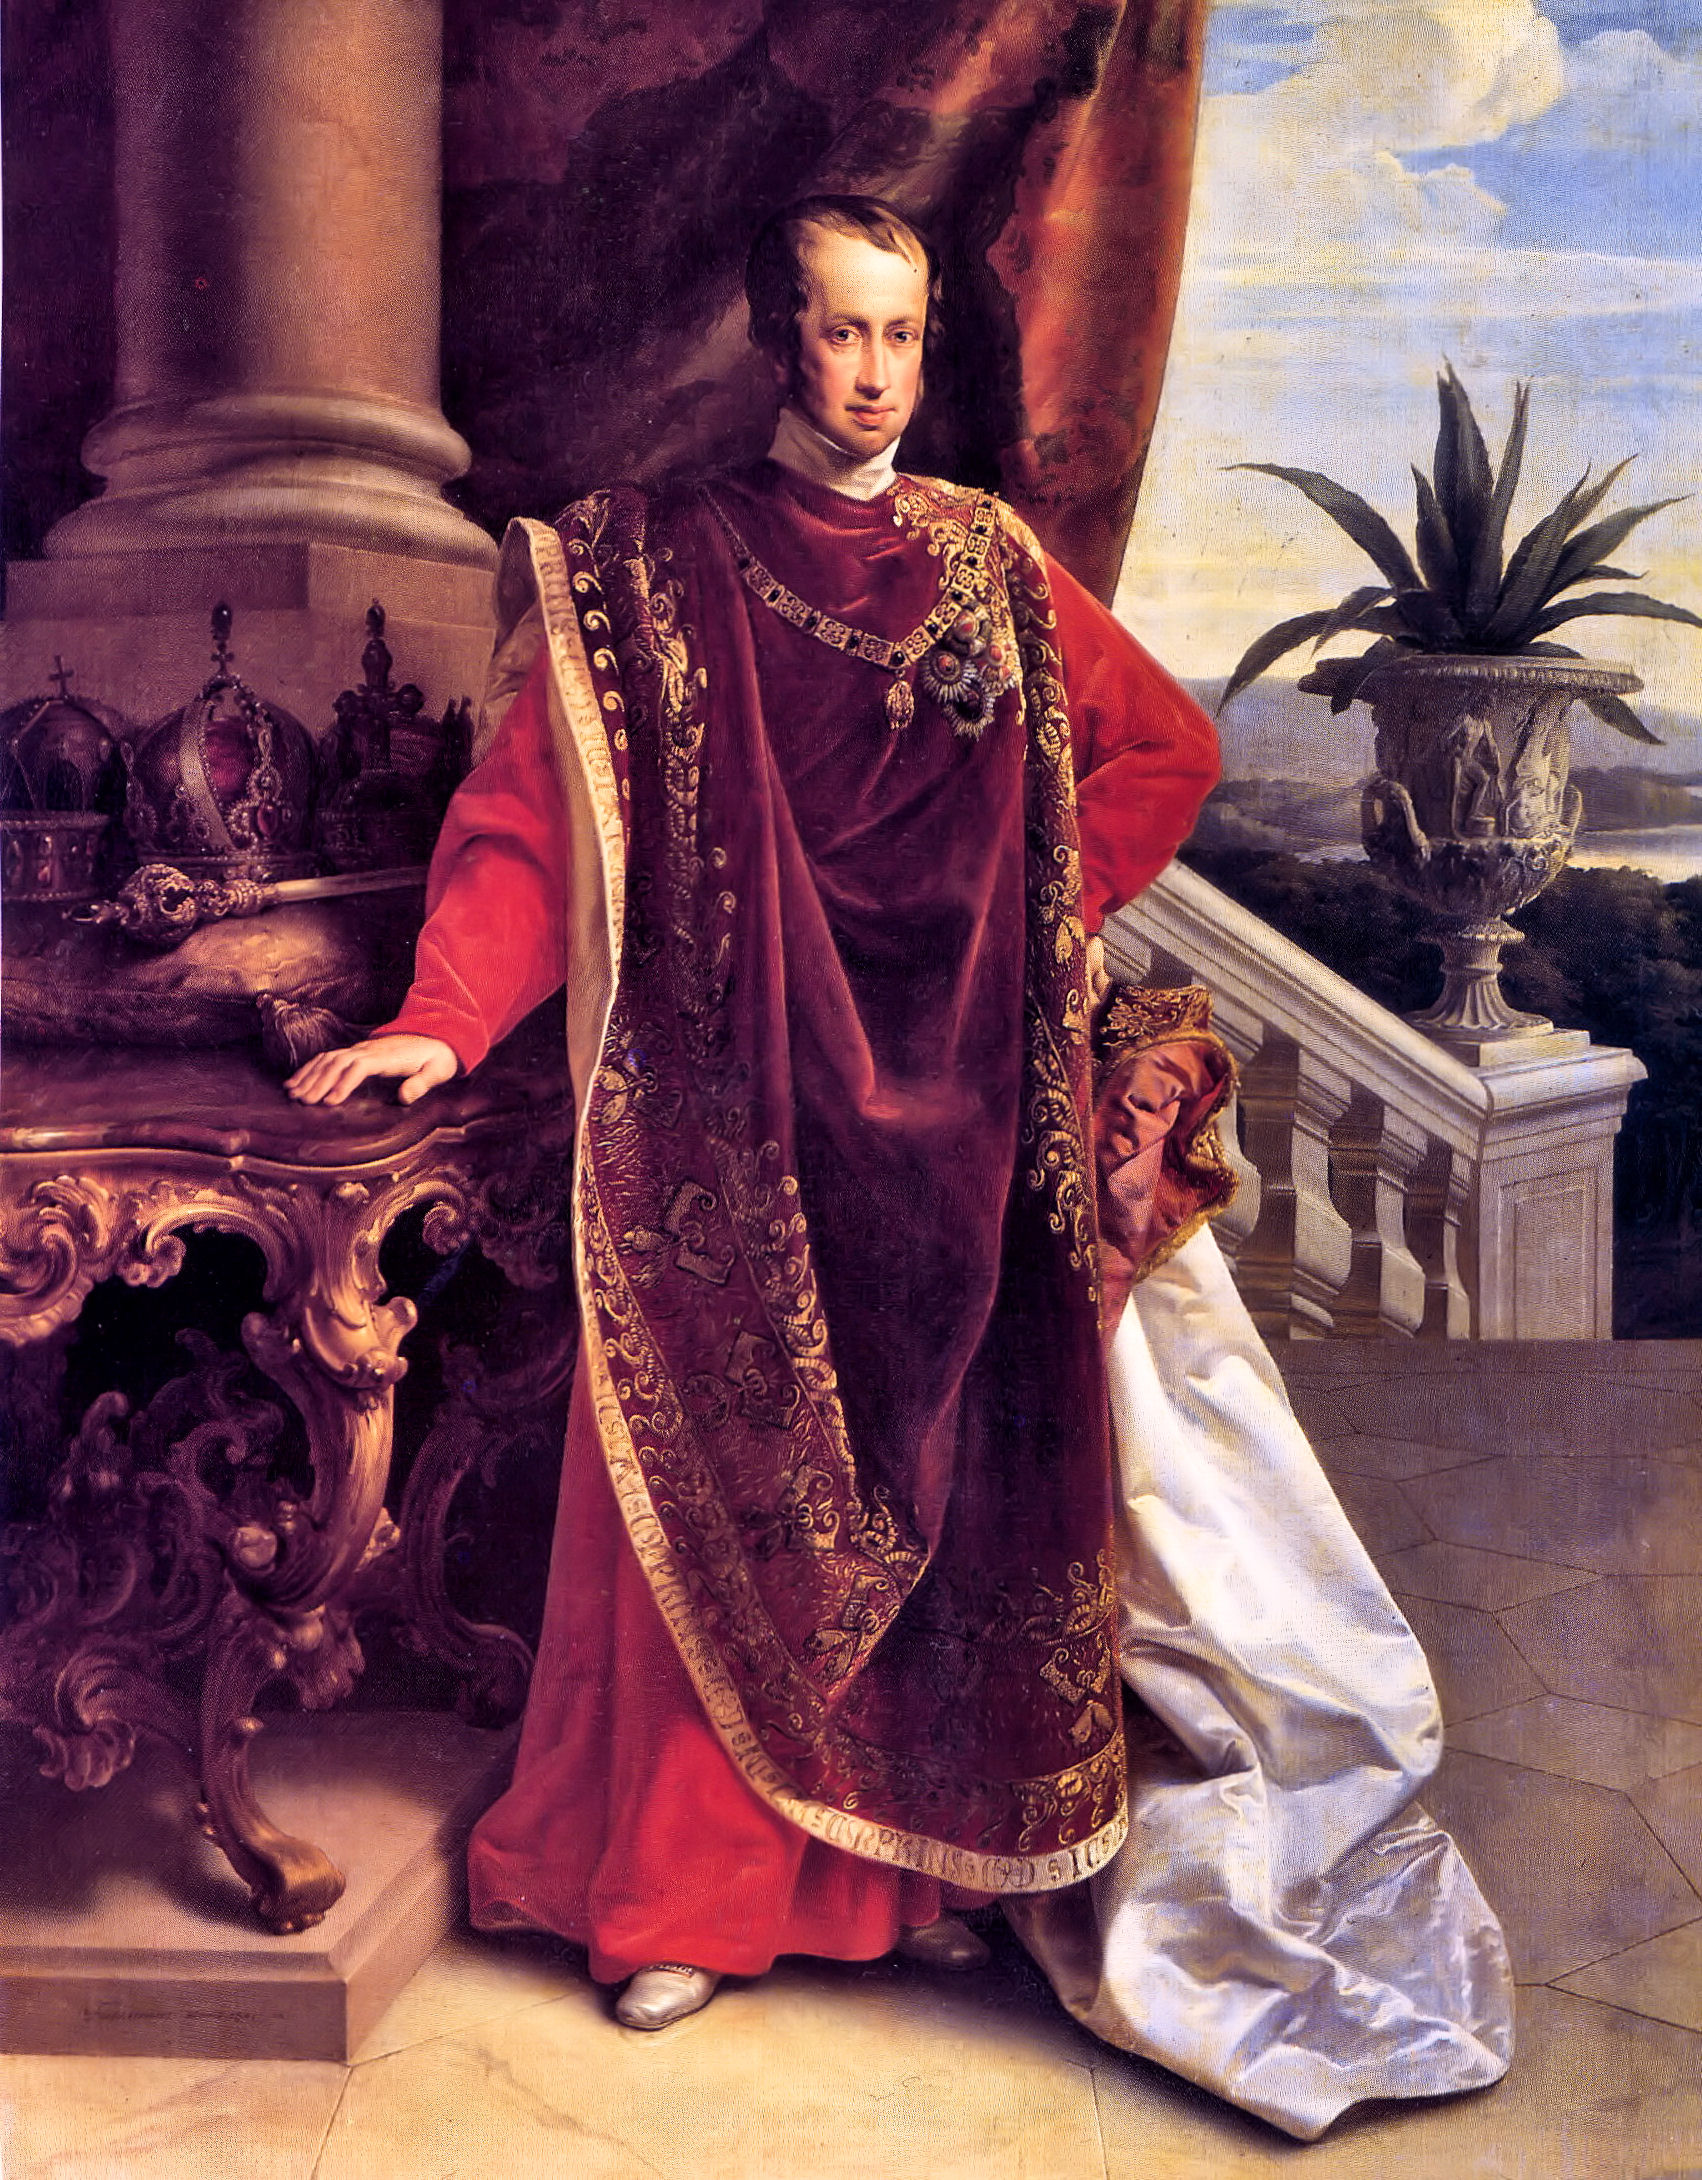 Ferdinand I, 5th Grand prince of Transylvania